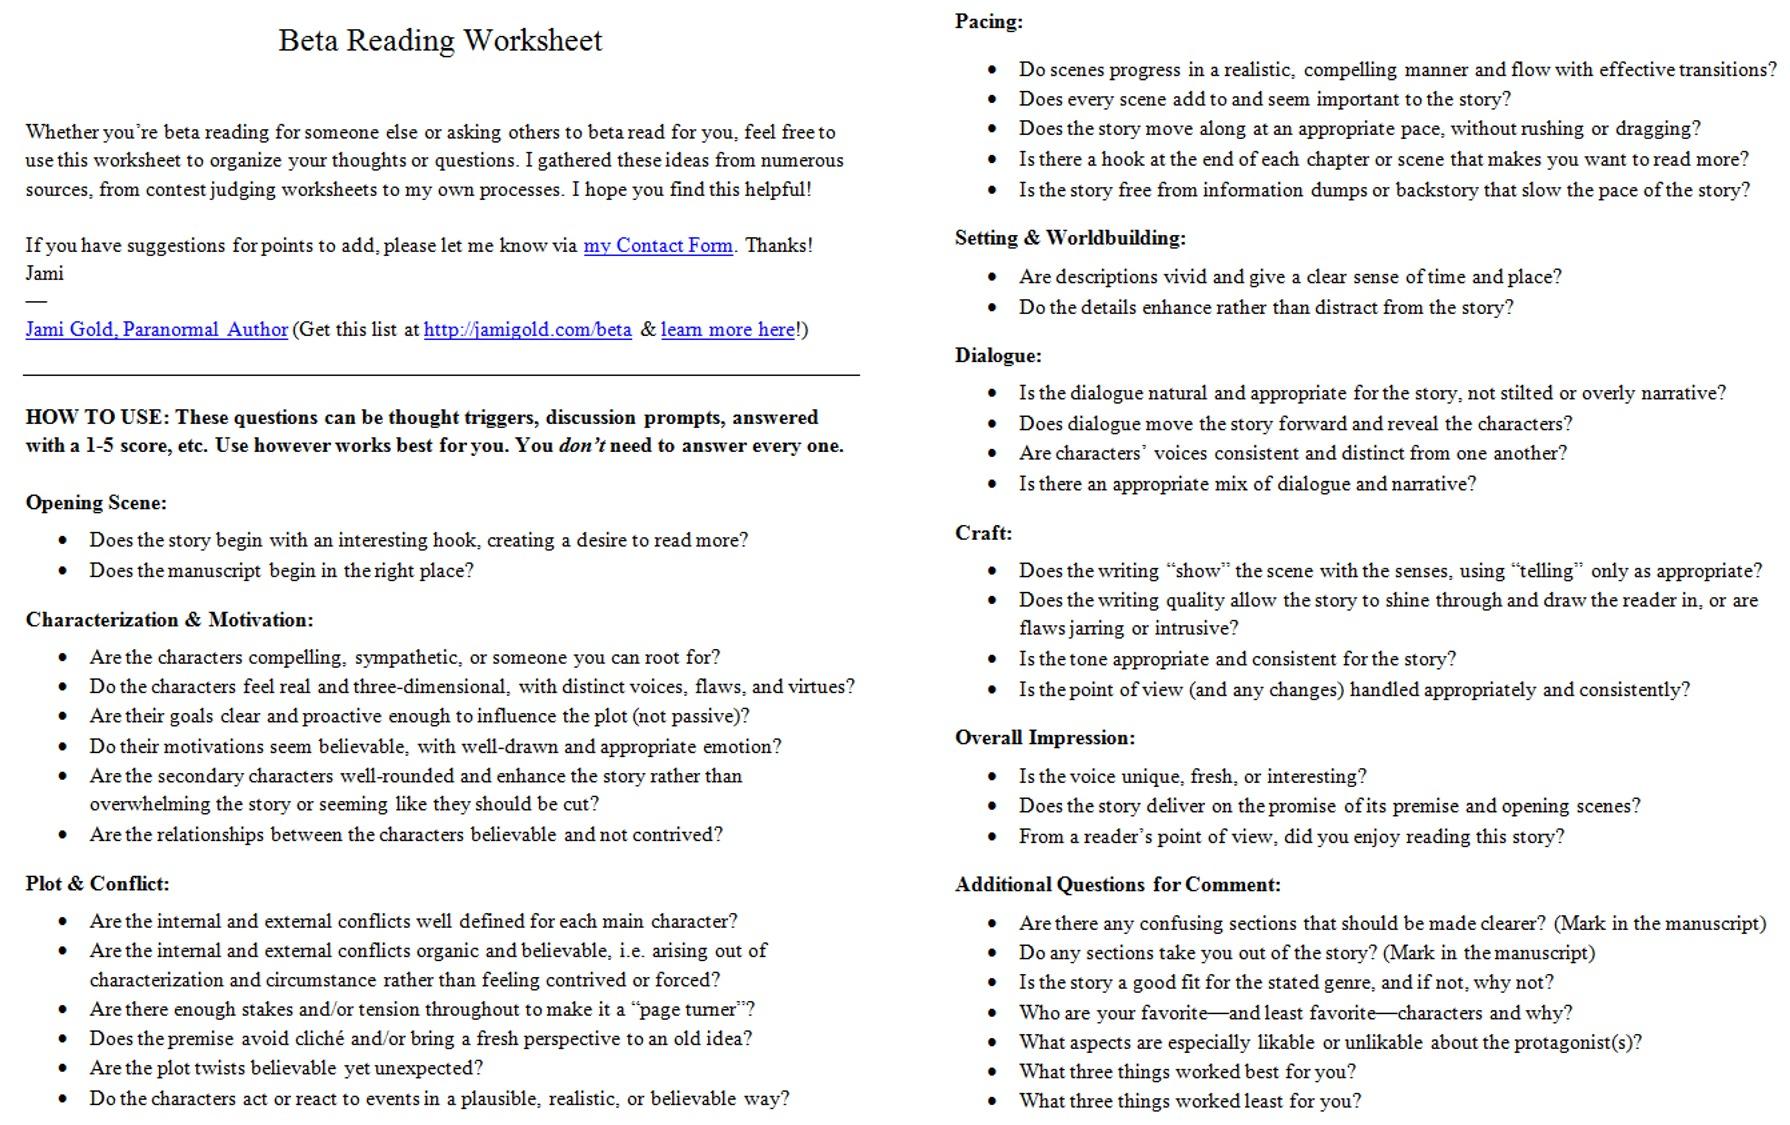 Aldiablosus  Fascinating Worksheets For Writers  Jami Gold Paranormal Author With Goodlooking Screen Shot Of The Twopage Beta Reading Worksheet With Lovely Writing Practice Worksheets Also Factor Trees Worksheets In Addition Factoring Completely Worksheet And System Of Equations Substitution Worksheet As Well As Classifying Chemical Reactions Worksheet Answer Key Additionally Multiplications Worksheets From Jamigoldcom With Aldiablosus  Goodlooking Worksheets For Writers  Jami Gold Paranormal Author With Lovely Screen Shot Of The Twopage Beta Reading Worksheet And Fascinating Writing Practice Worksheets Also Factor Trees Worksheets In Addition Factoring Completely Worksheet From Jamigoldcom